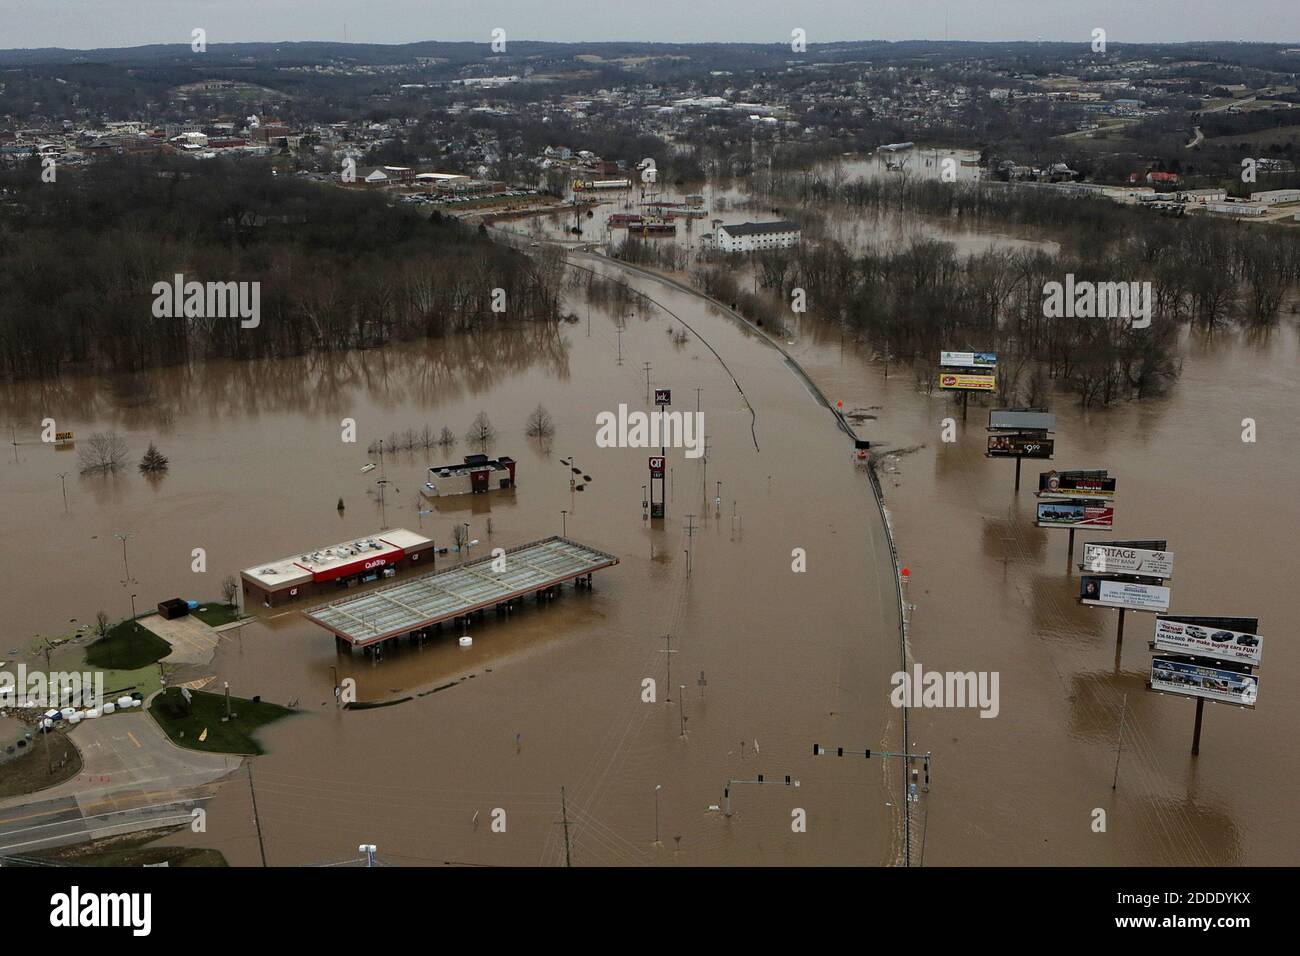 NO FILM, NO VIDEO, NO TV, NO DOCUMENTARY - A QuikTrip gas station along Highway 50 and Route 47 is flooded on Tuesday, Dec. 29, 2015 in Union, MO, USA Photo by Huy Mach/St. Louis Post-Dispatch/TNS/ABACAPRESS.COM Stock Photo